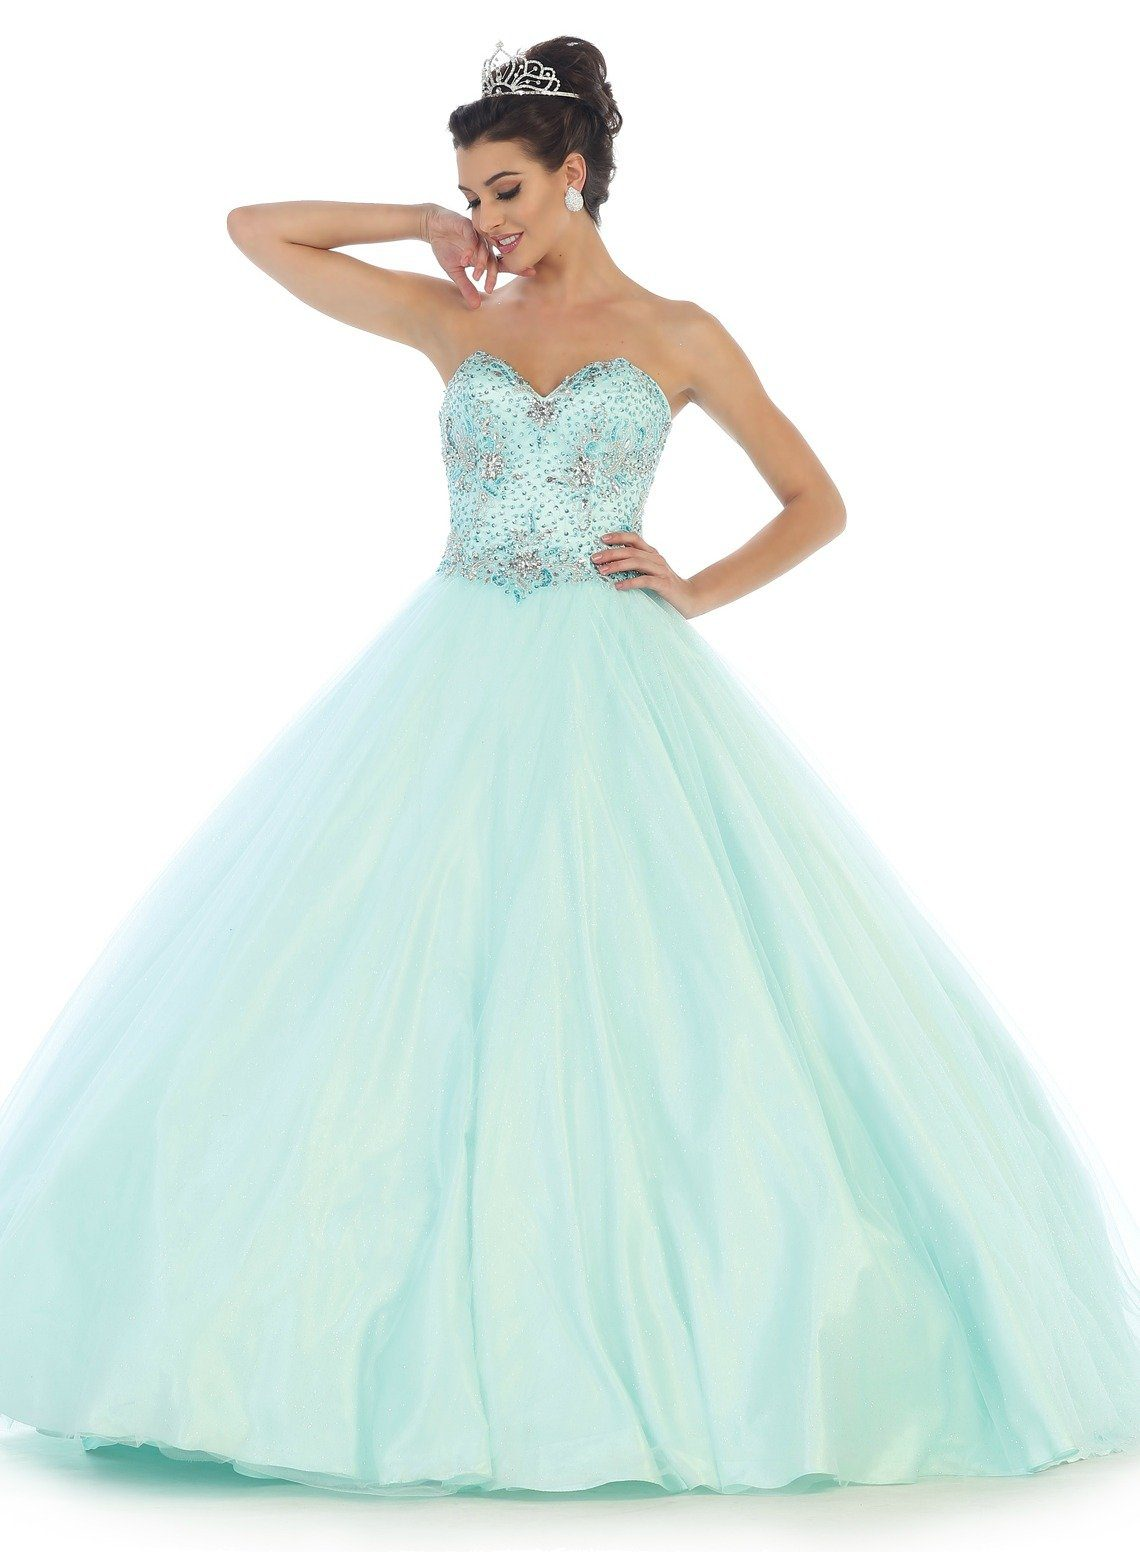 * Long Strapless Beaded Aqua Ball Gown